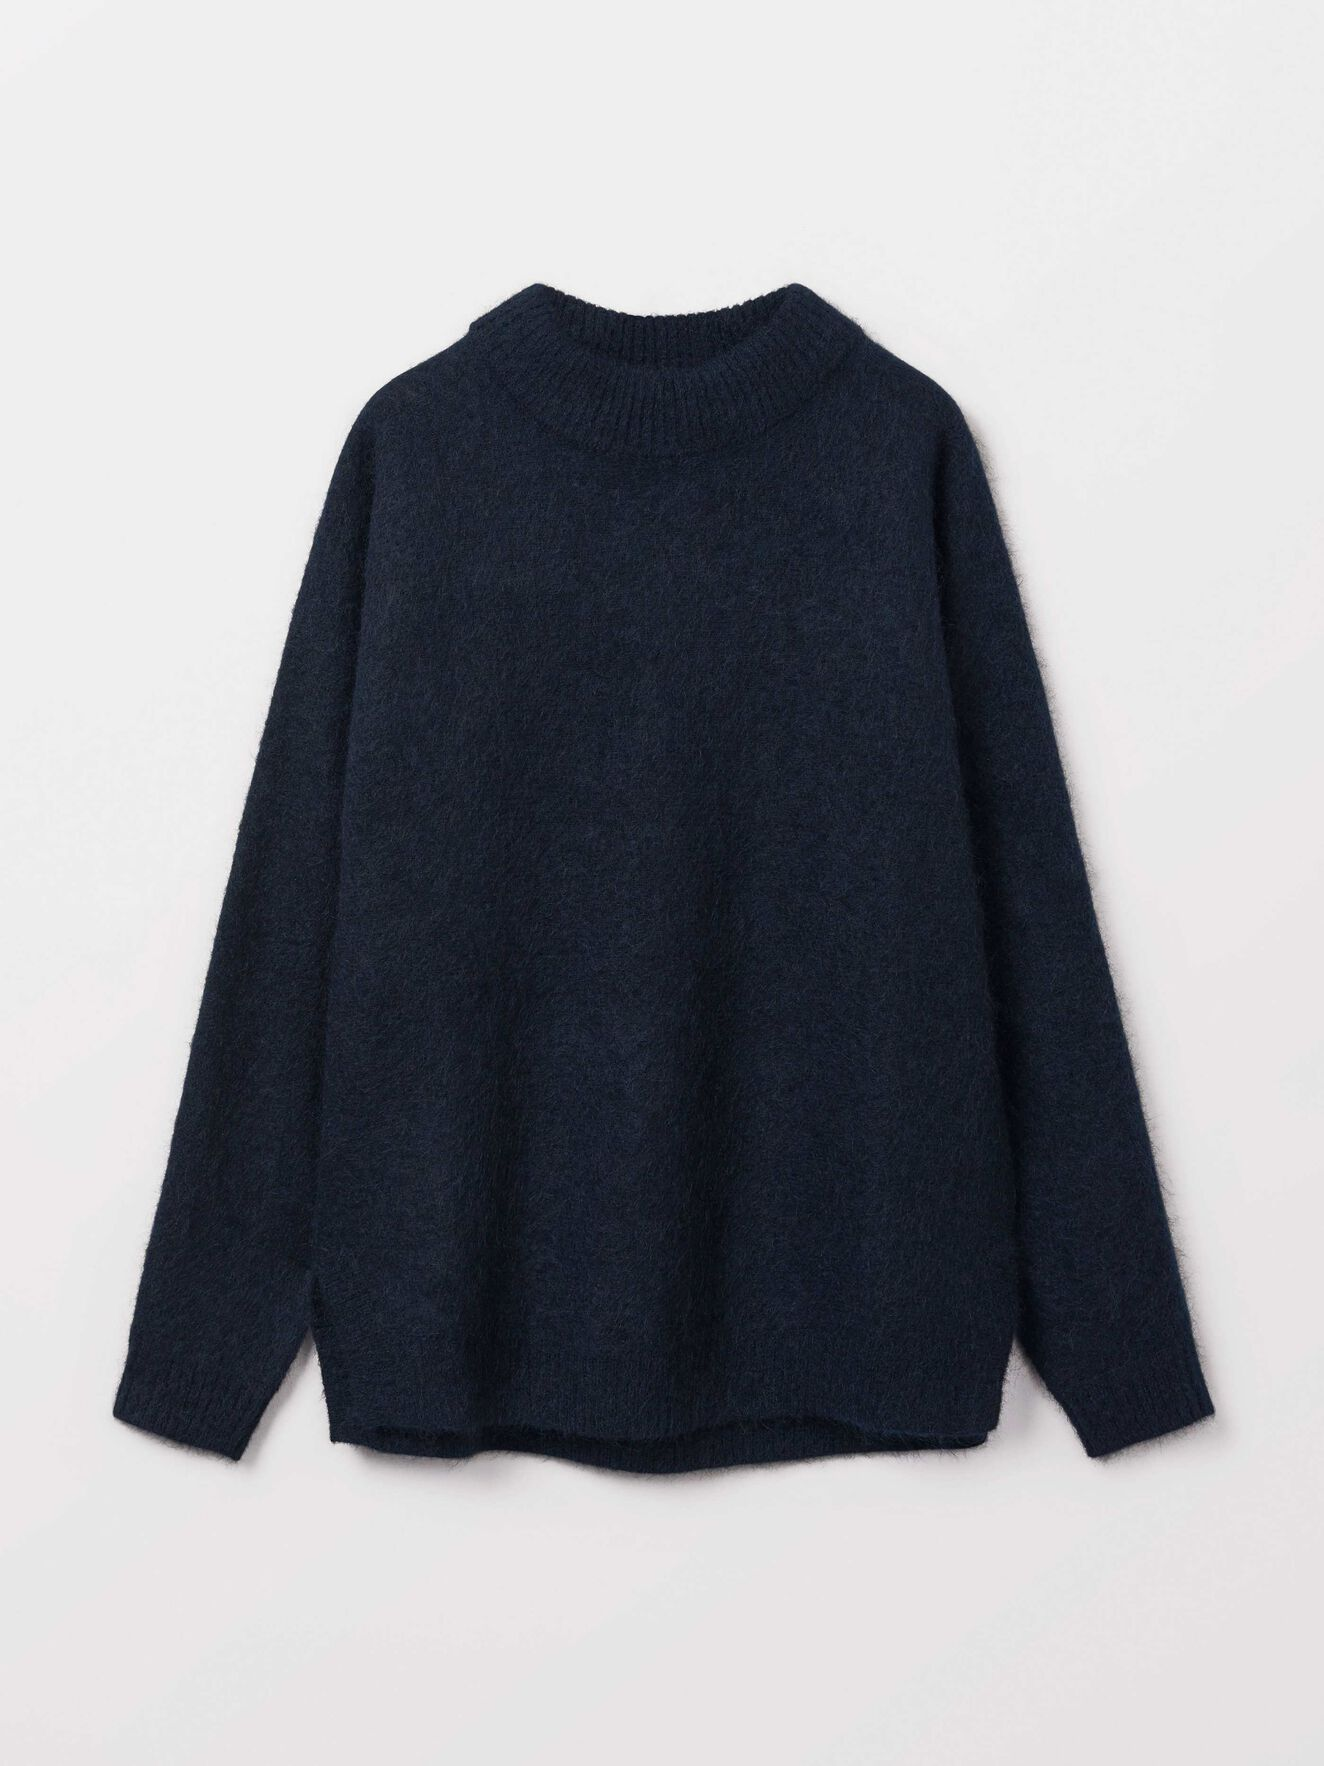 Gwyllen Pullover in Dark Sea from Tiger of Sweden